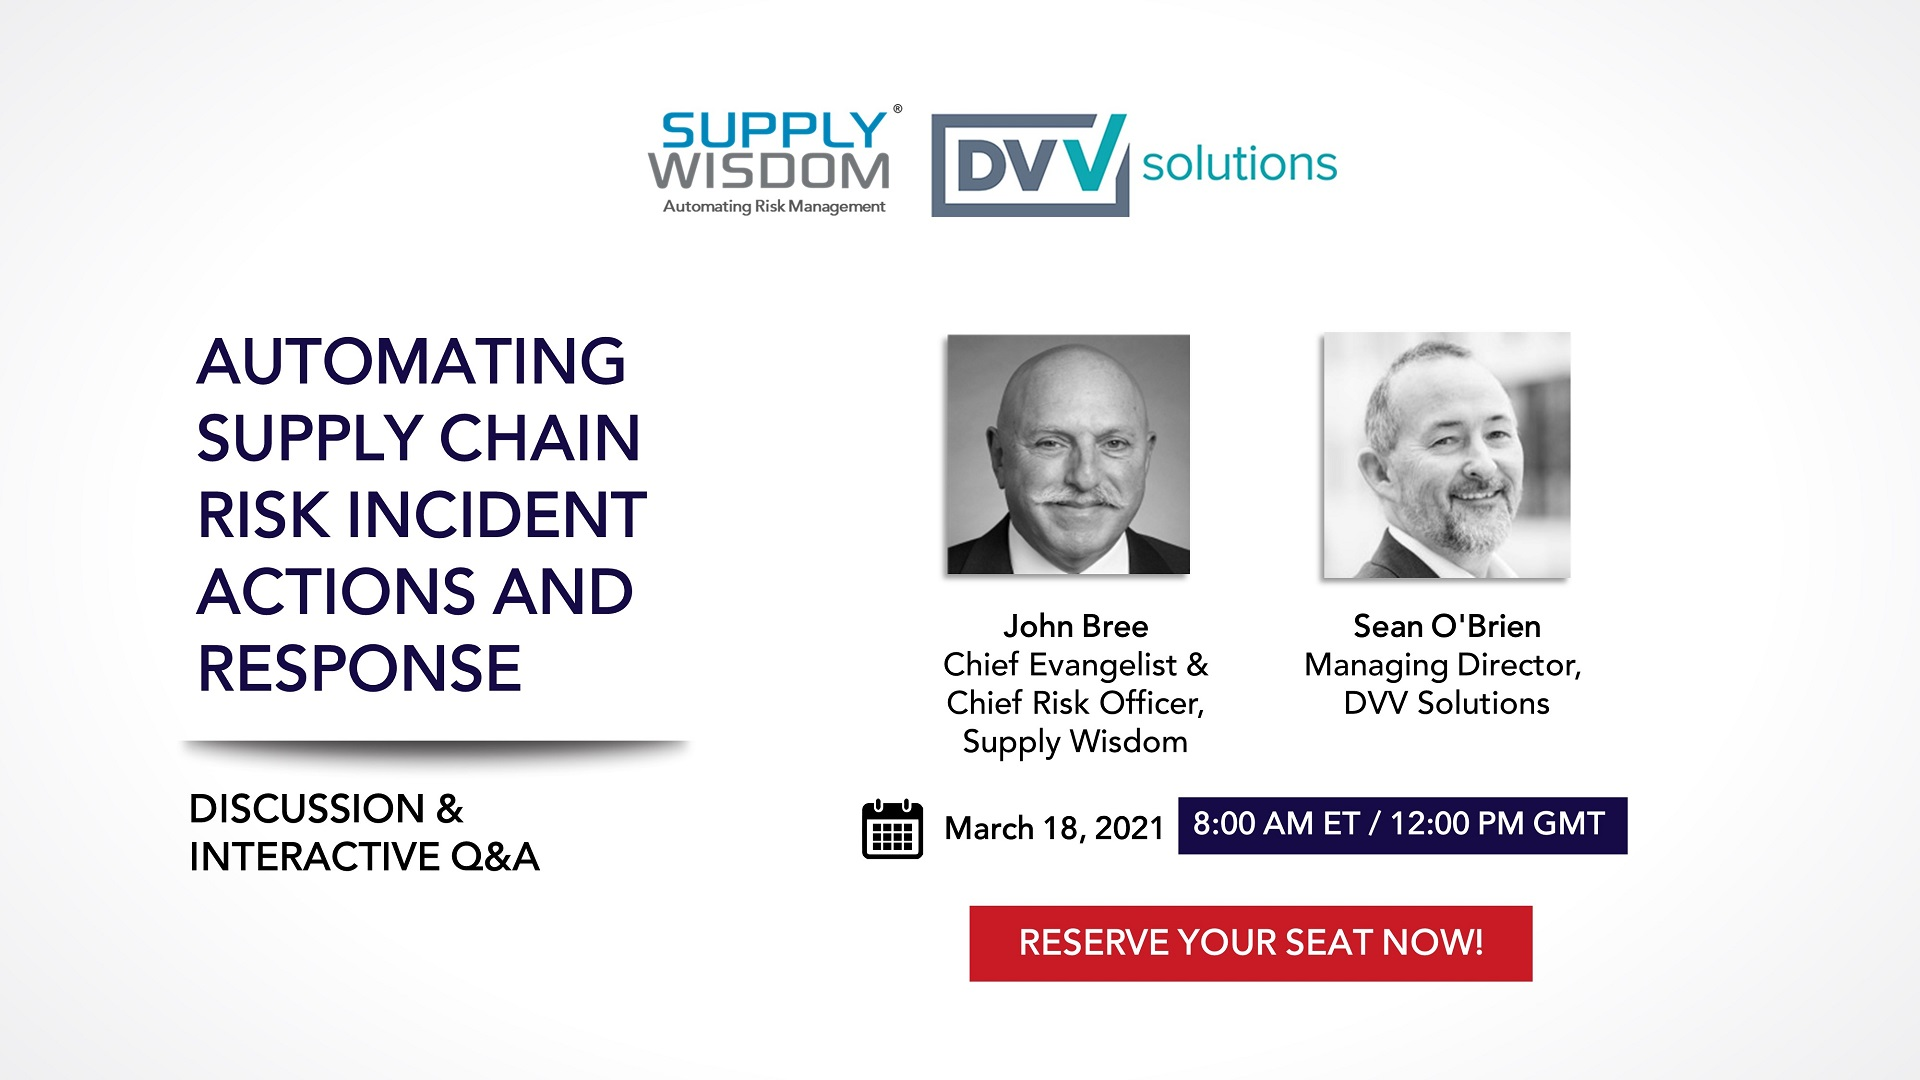 2021 March 18 Webinar on Automating Supply Chain Risk Management